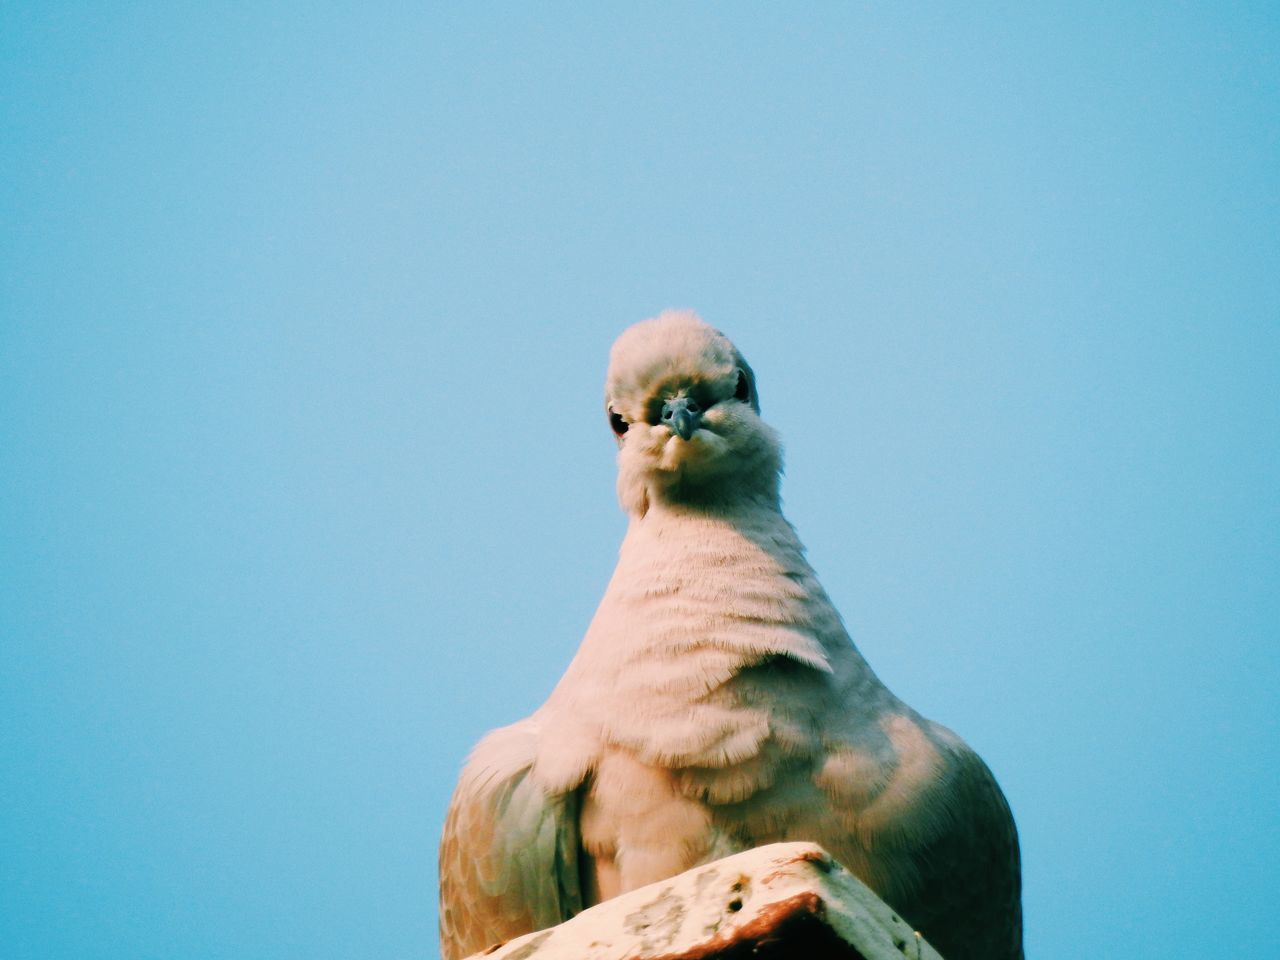 Low Angle Portrait Of Pigeon Perching On Roof Against Clear Blue Sky